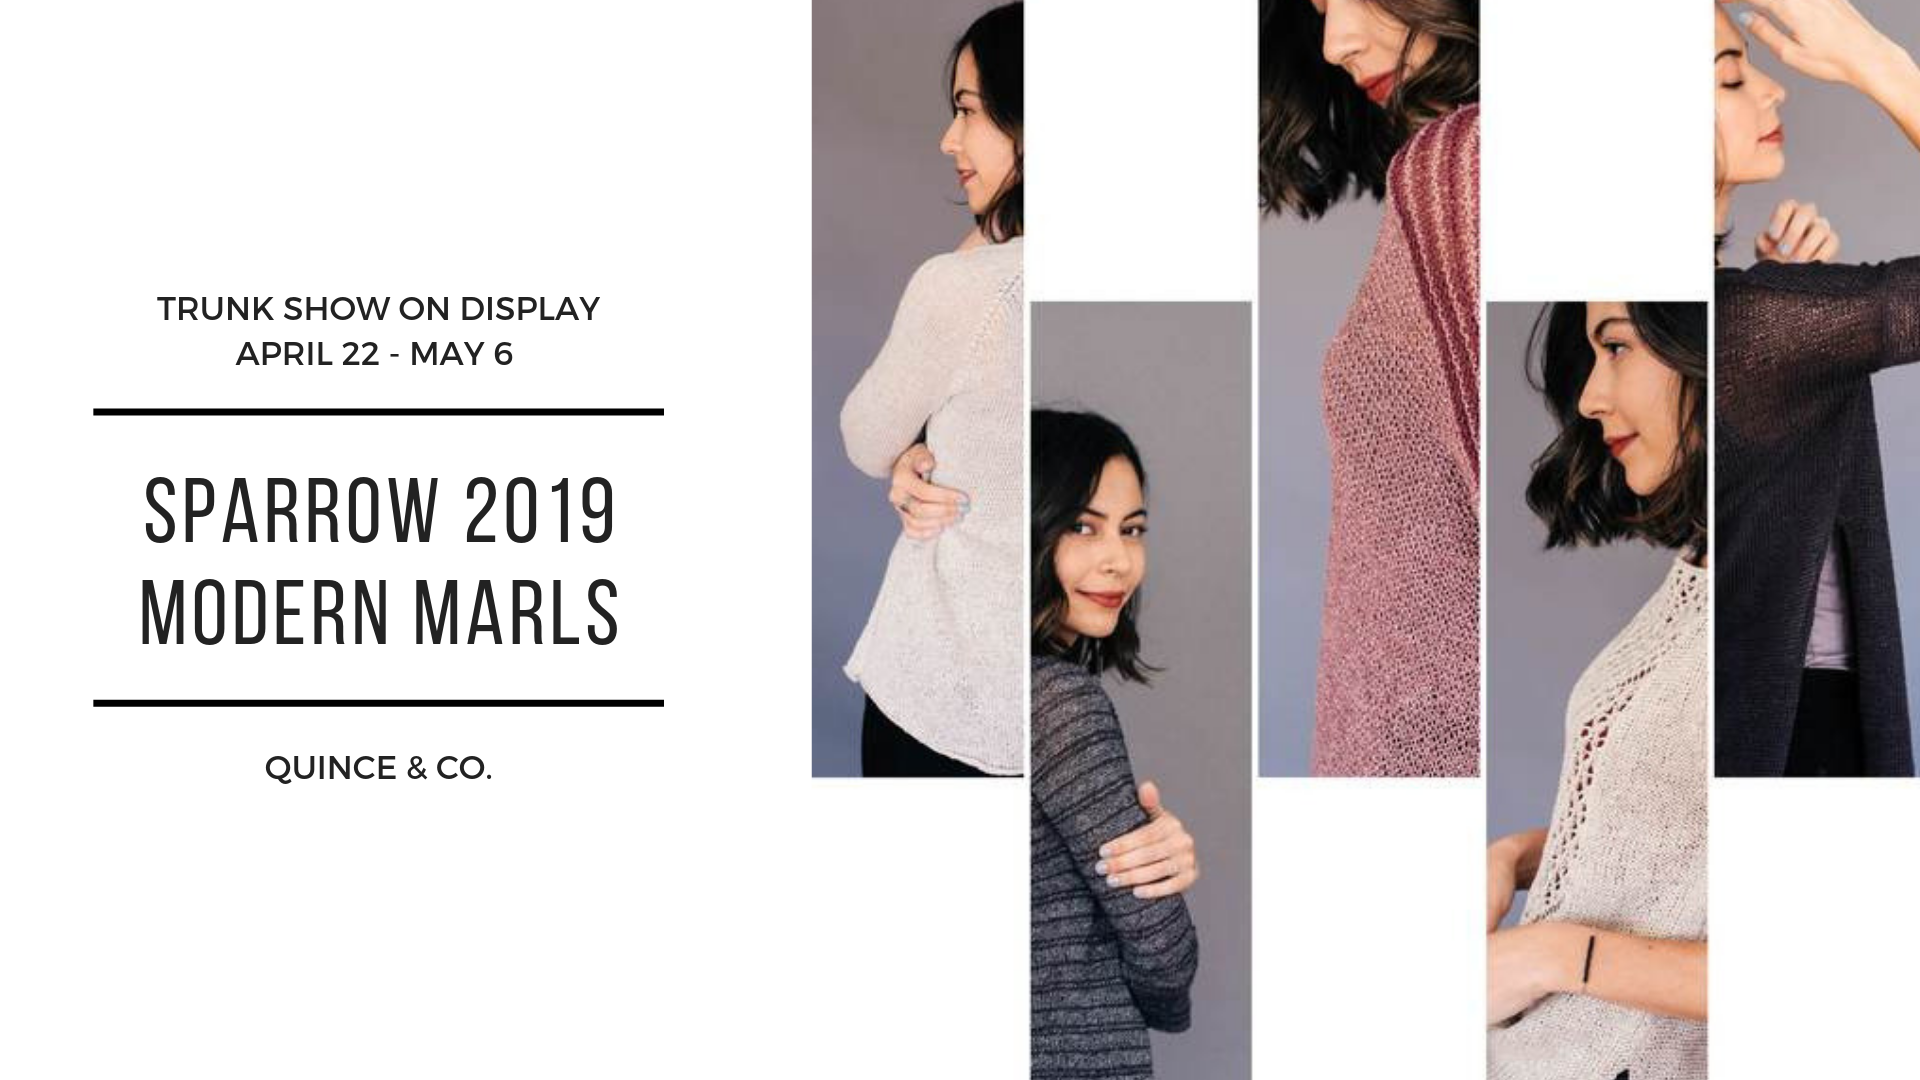 Sparrow 2019 - Modern Marls Trunk Show